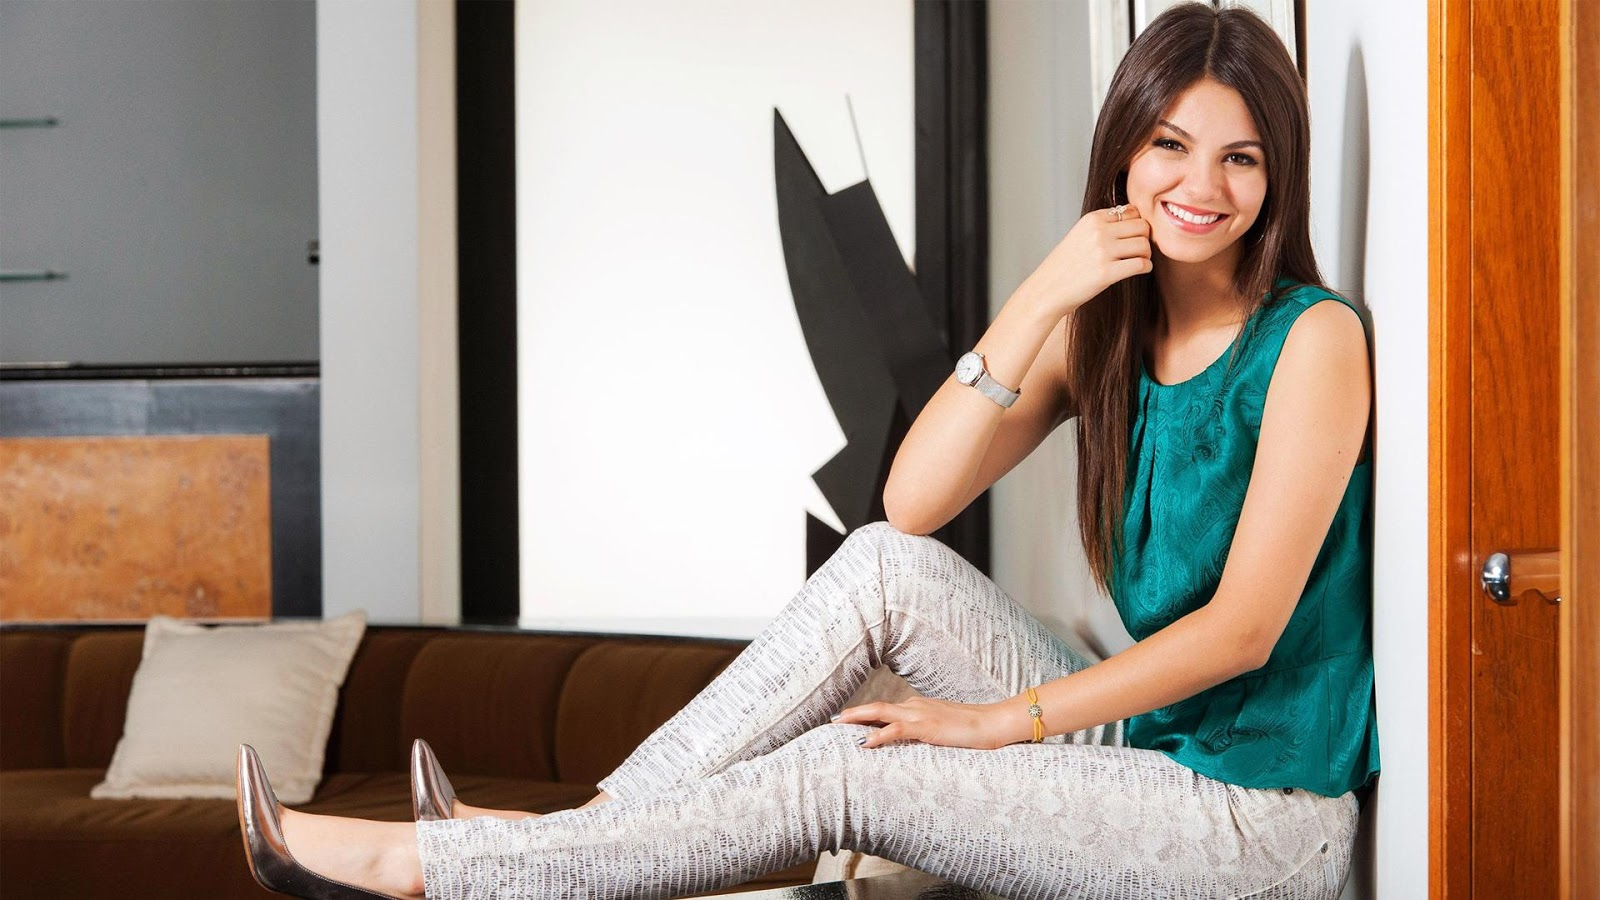 justice hd picturesvictoria justice hd wallpapersvictoria justice hd 1600x900